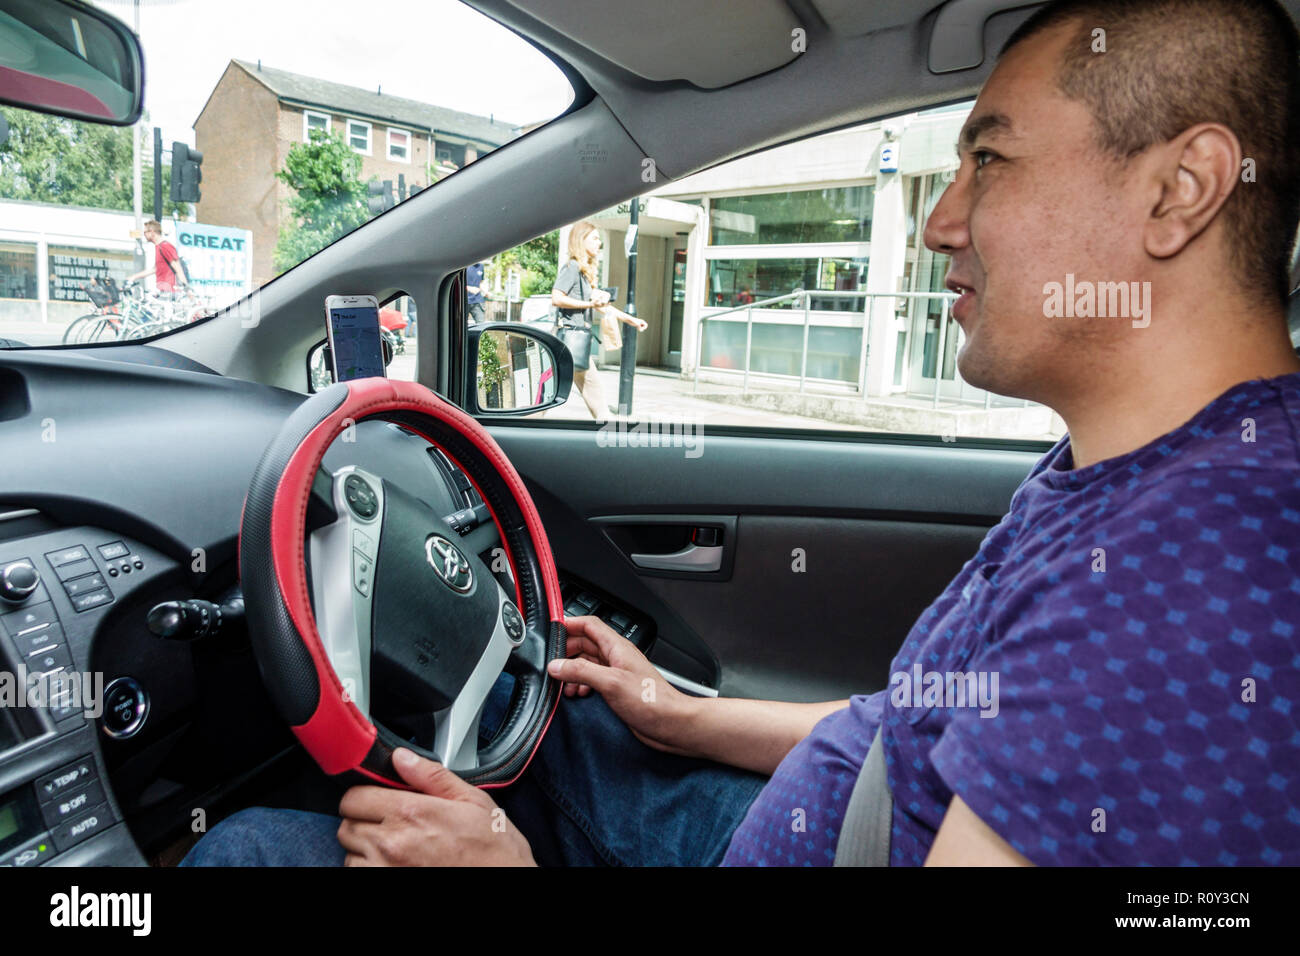 London England United Kingdom Great Britain Lambeth South Bank uber driver driving car interior steering wheel Asian man right-hand drive system Toyot - Stock Image